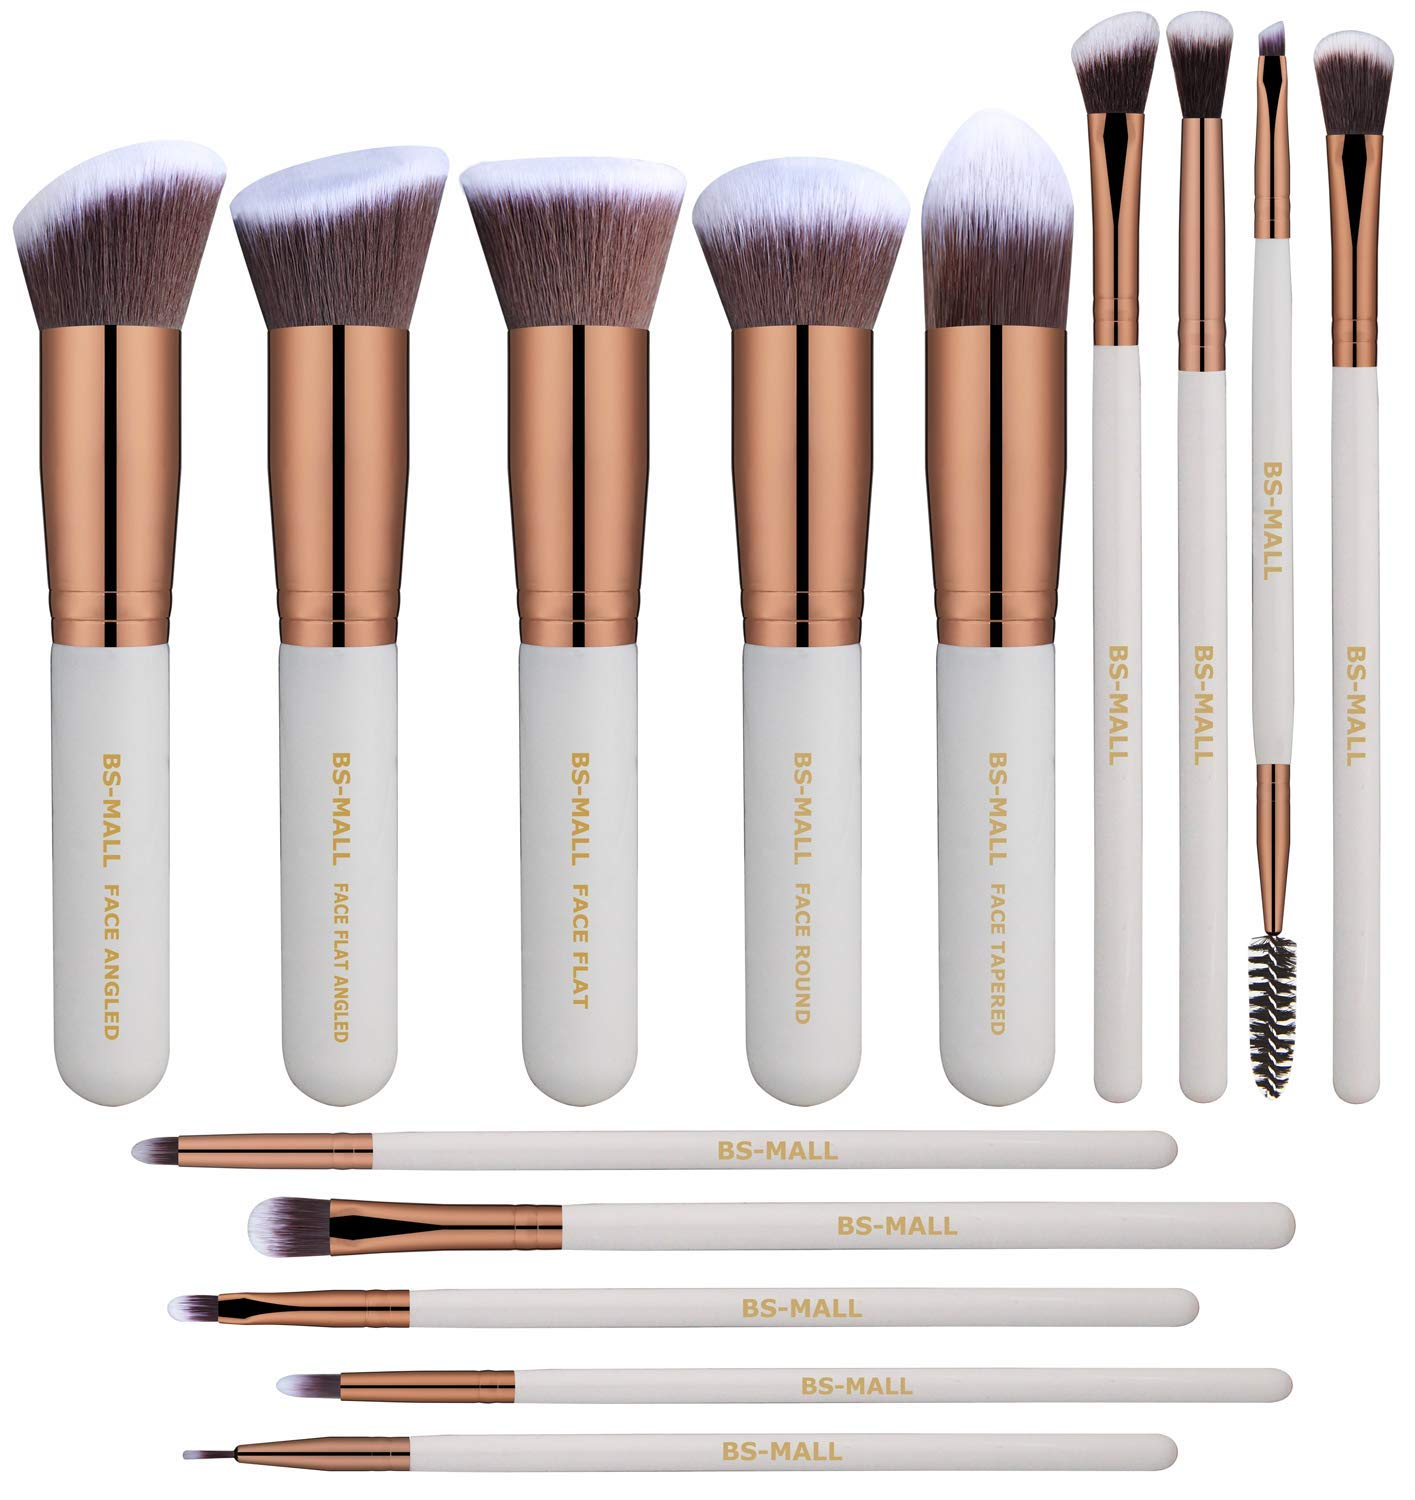 BS-MALL(TM) Makeup Brushes Premium 14 Pcs Synthetic Foundation Powder Concealers Eye Shadows Makeup Brush Sets(white)